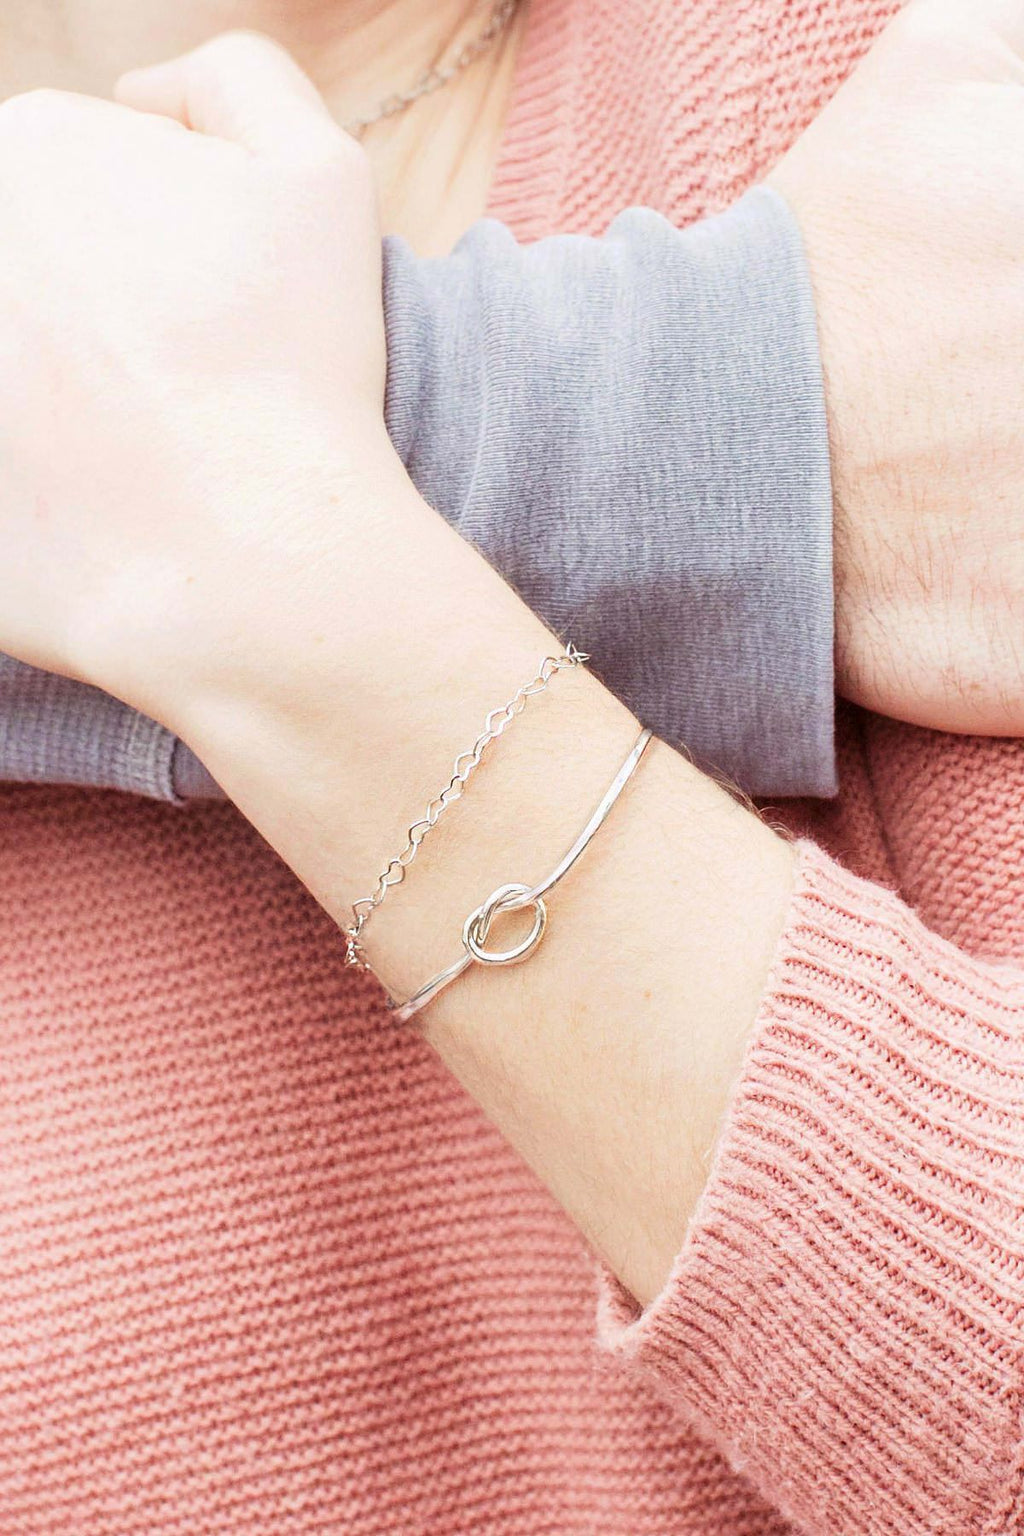 Darling Bracelet by Purpose Jewelry